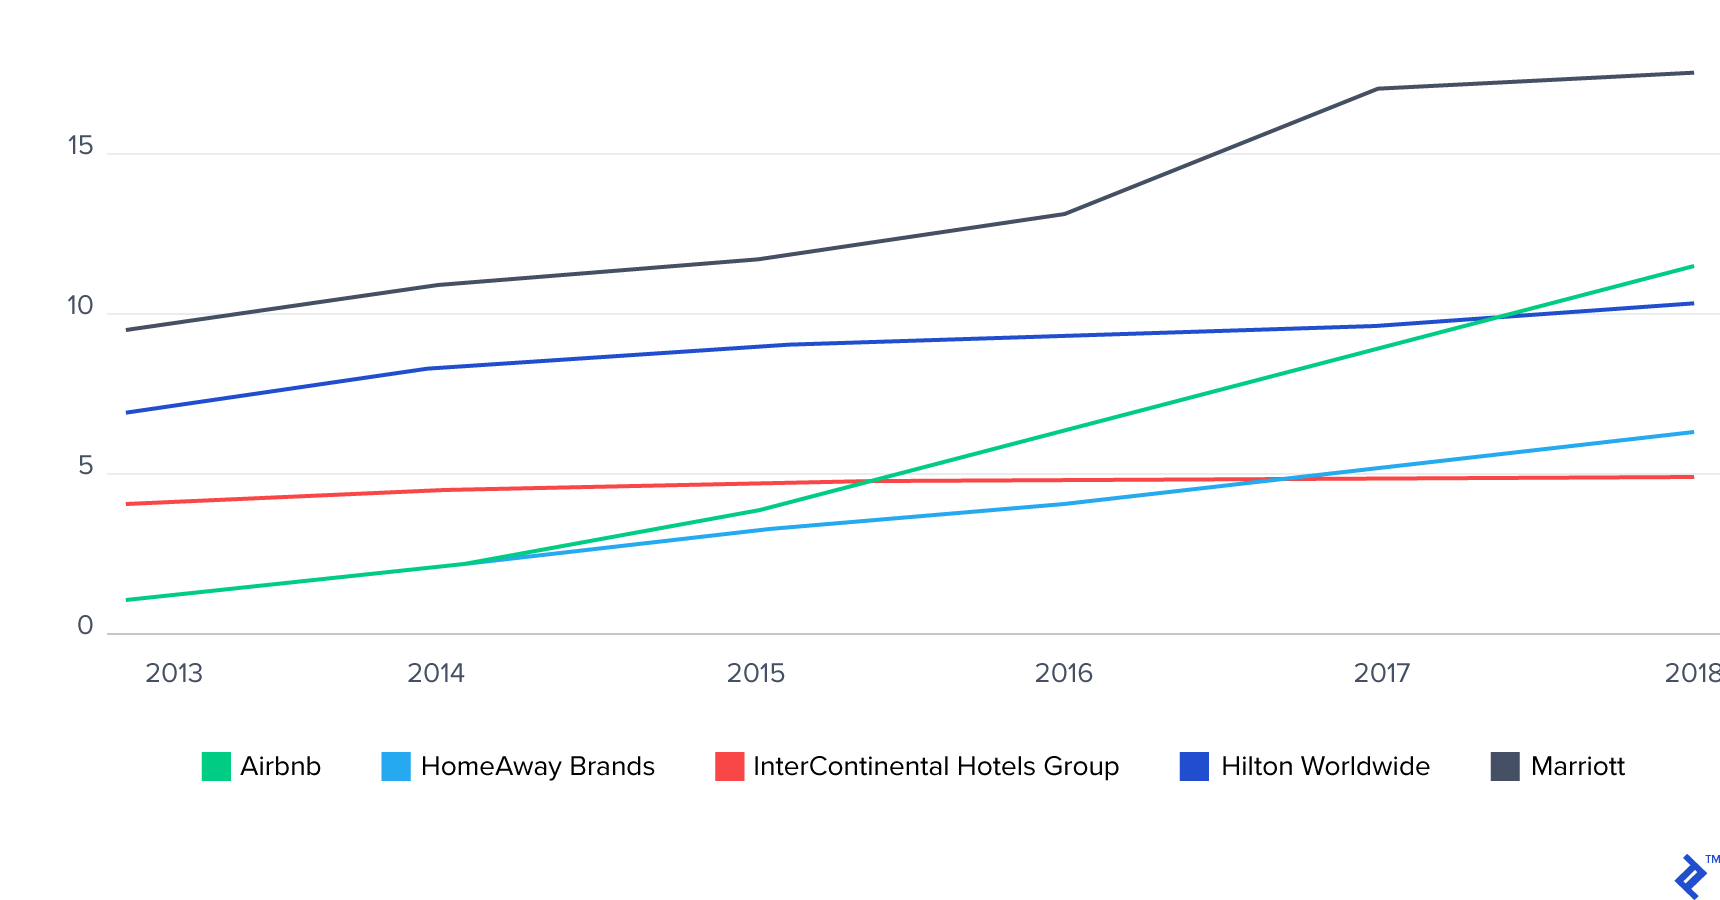 Consumer Spending on Airbnb vs. Hotels